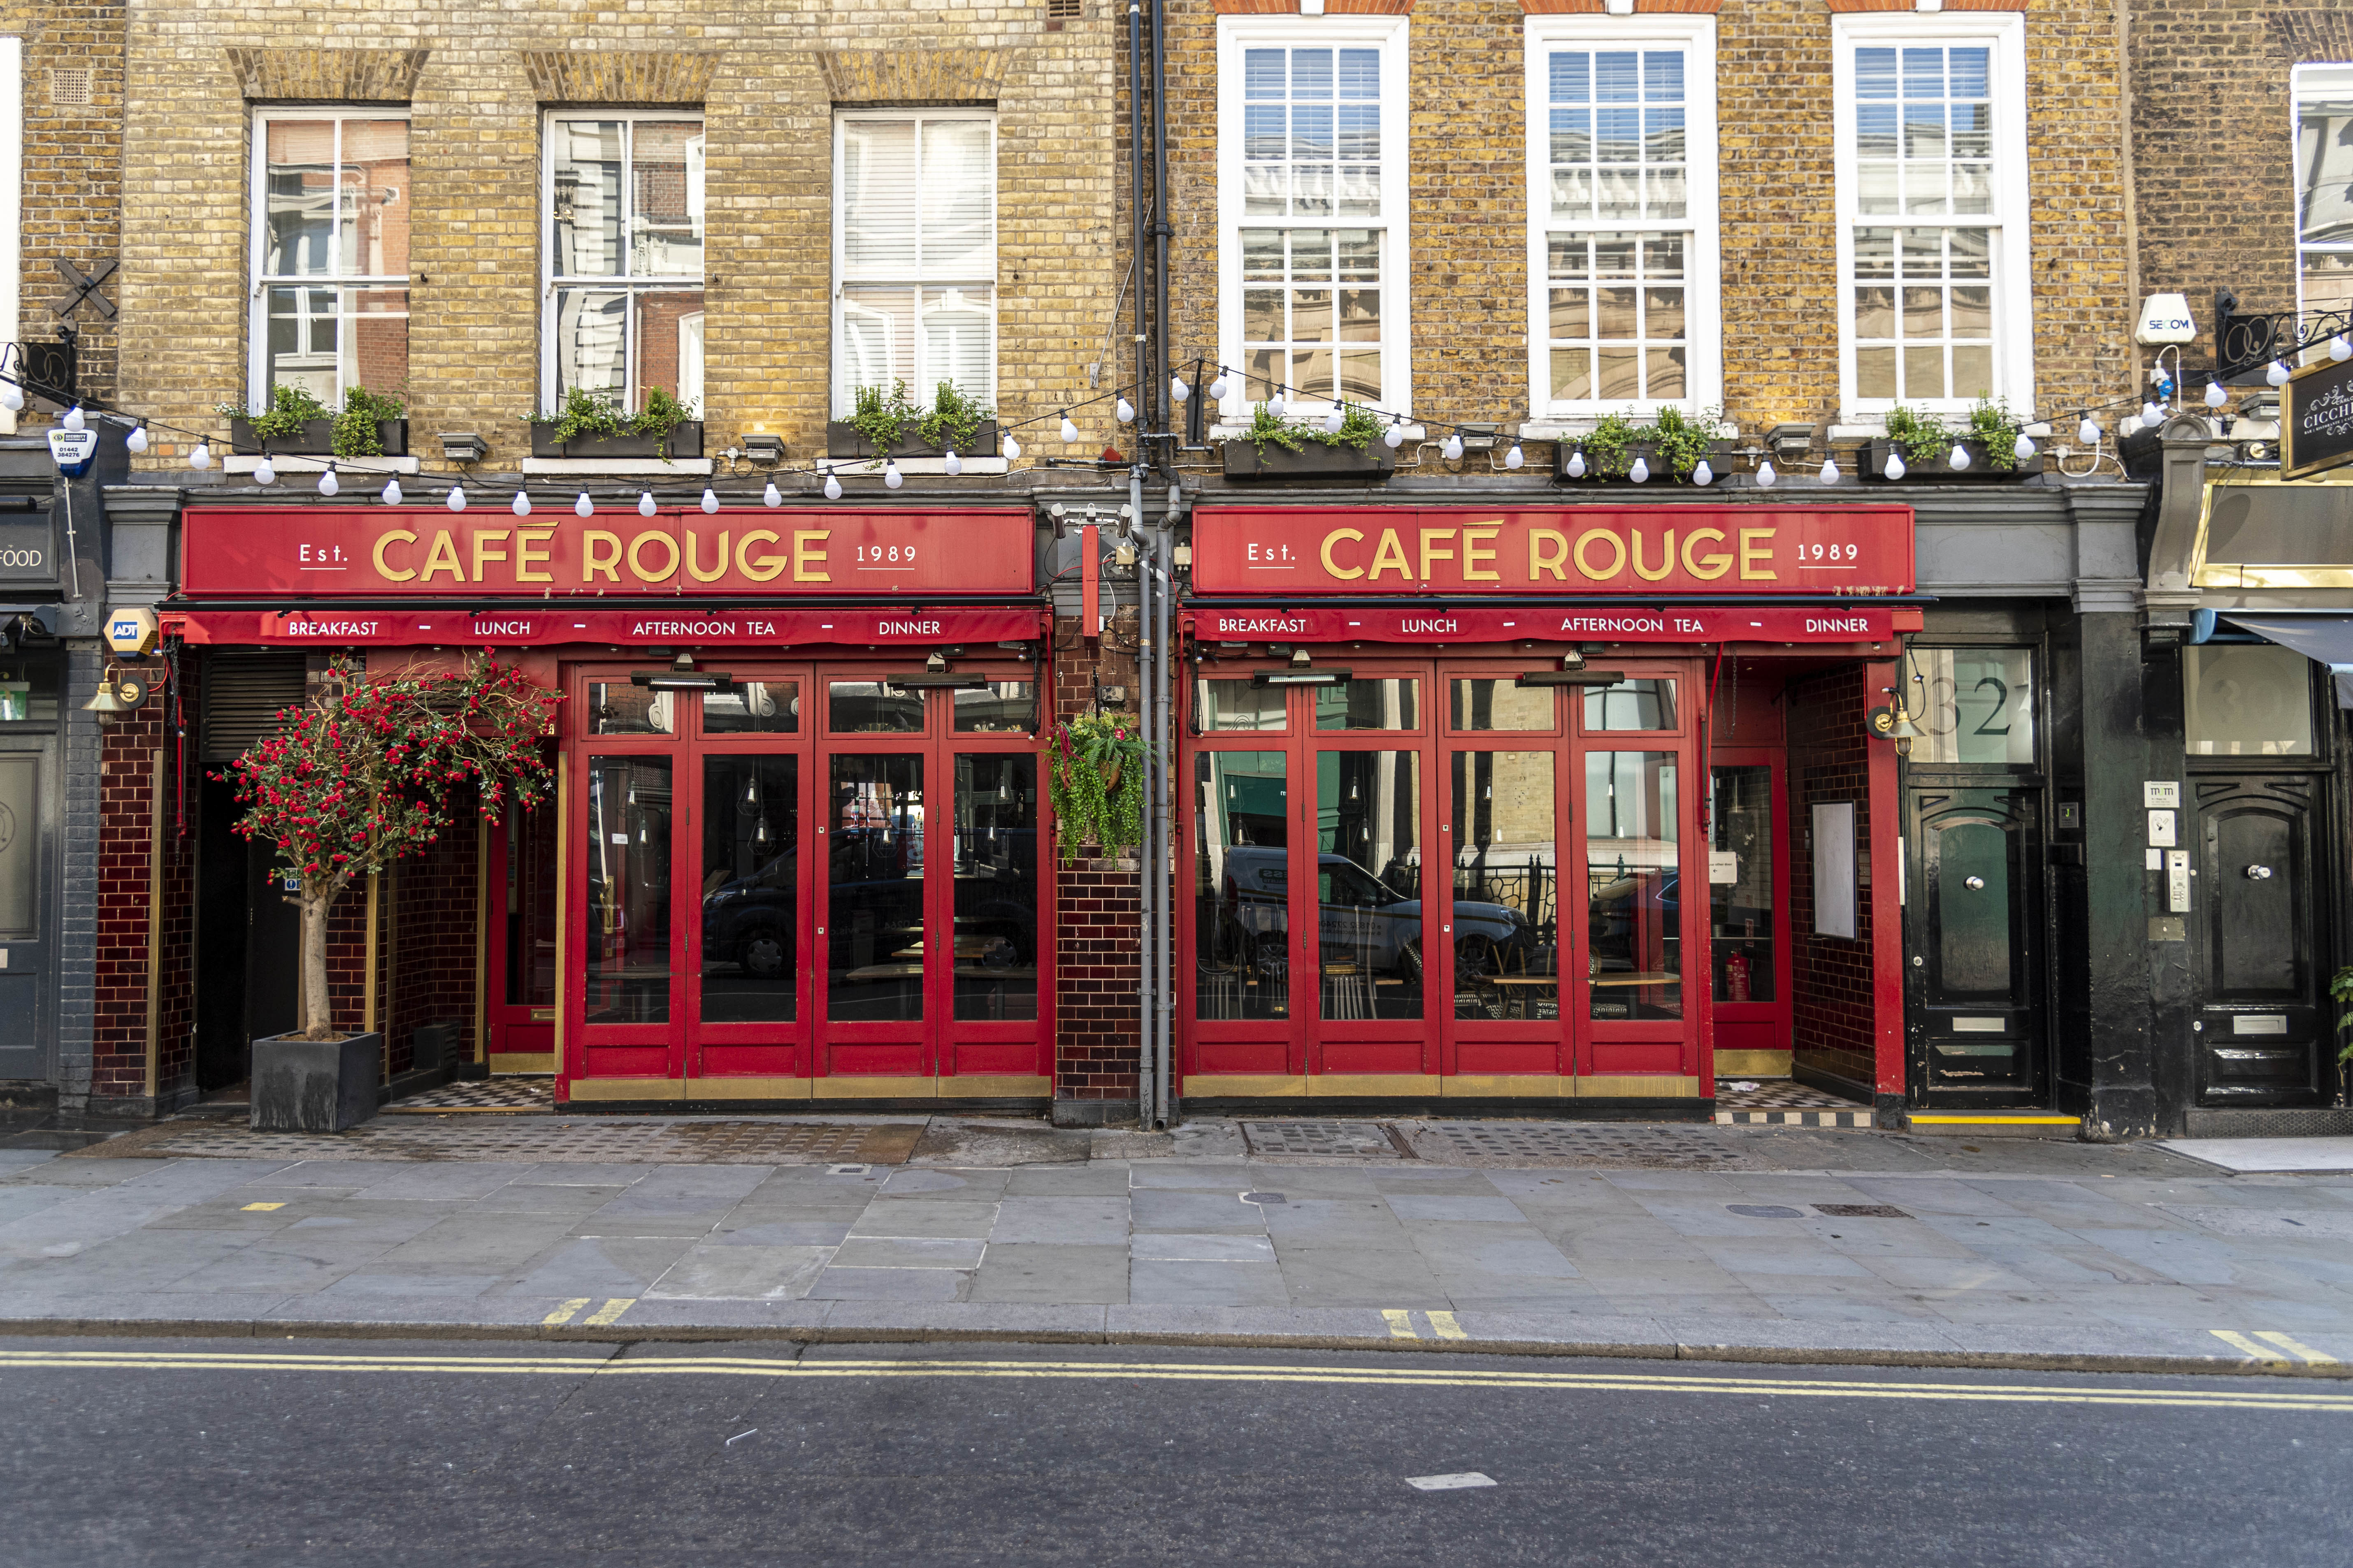 French-styled restaurant chain, Caf� Rouge seen at The Wellington, London. The owner of the Bella Italia and Caf� Rouge restaurant chains has said it is considering administration as the coronavirus crisis pushes the struggling business near to collapse, putting 6,000 jobs at risk. (Photo by Dave Rushen / SOPA Images/Sipa USA)